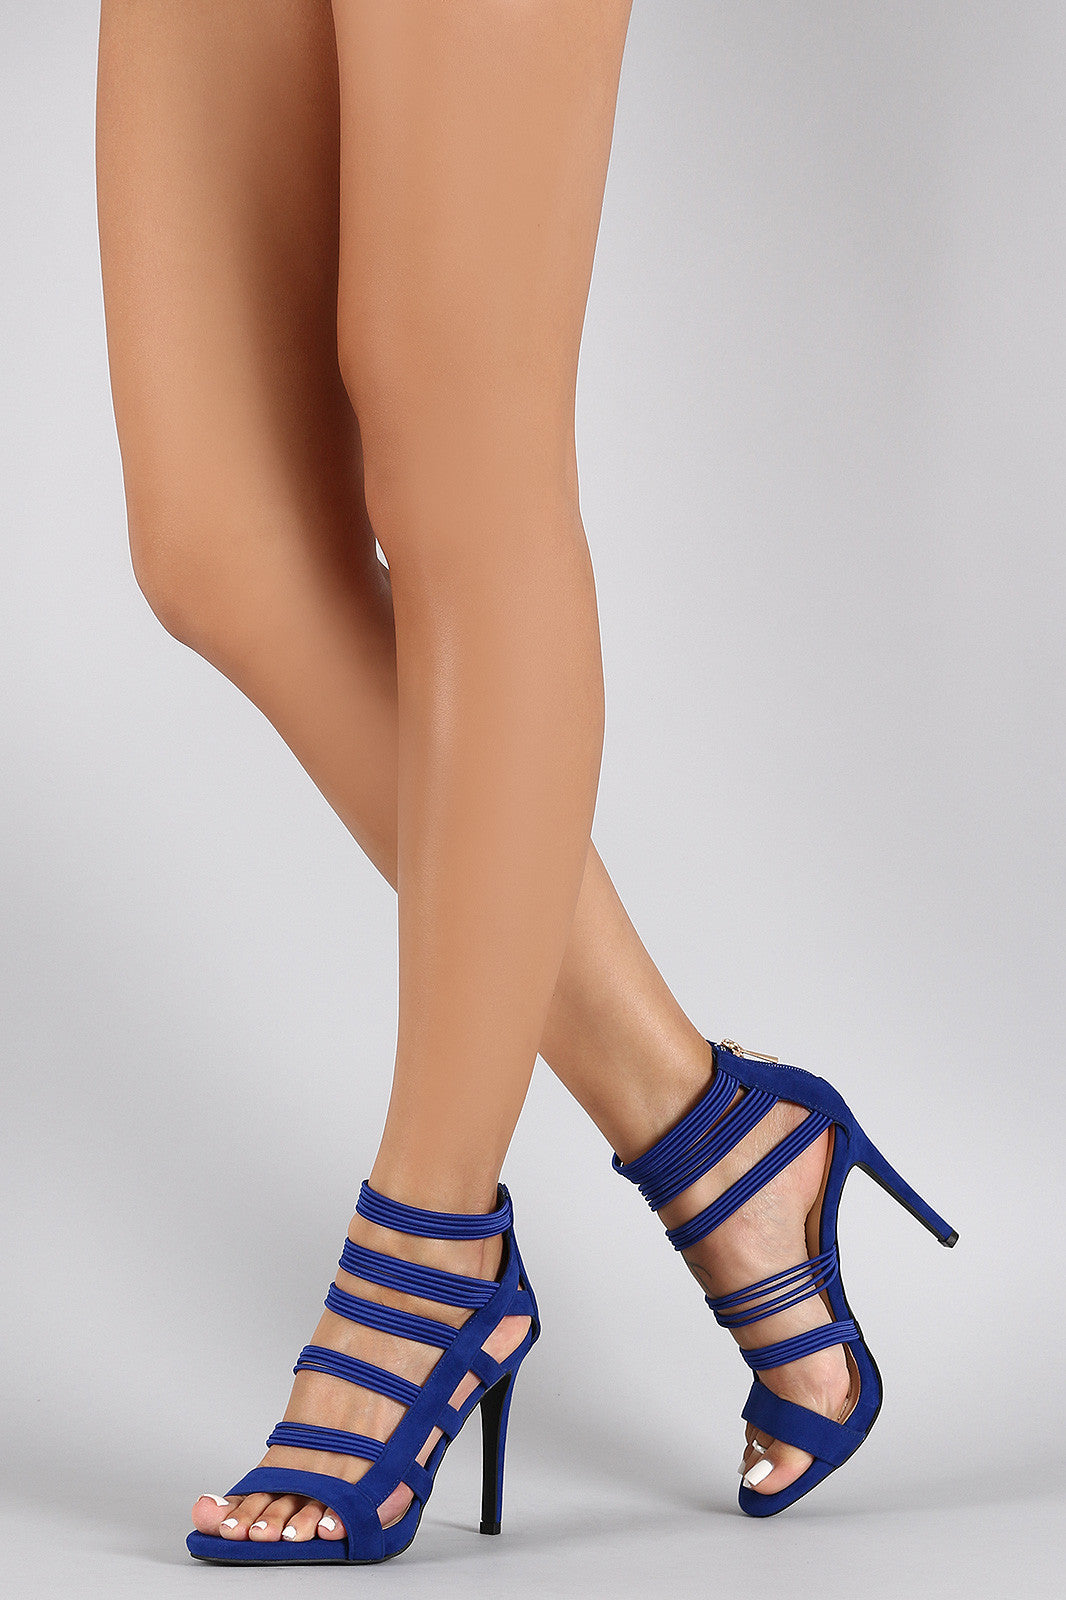 Anne Michelle Strappy Cage Cushioned Open Toe Heel - Thick 'N' Curvy Shop - 3